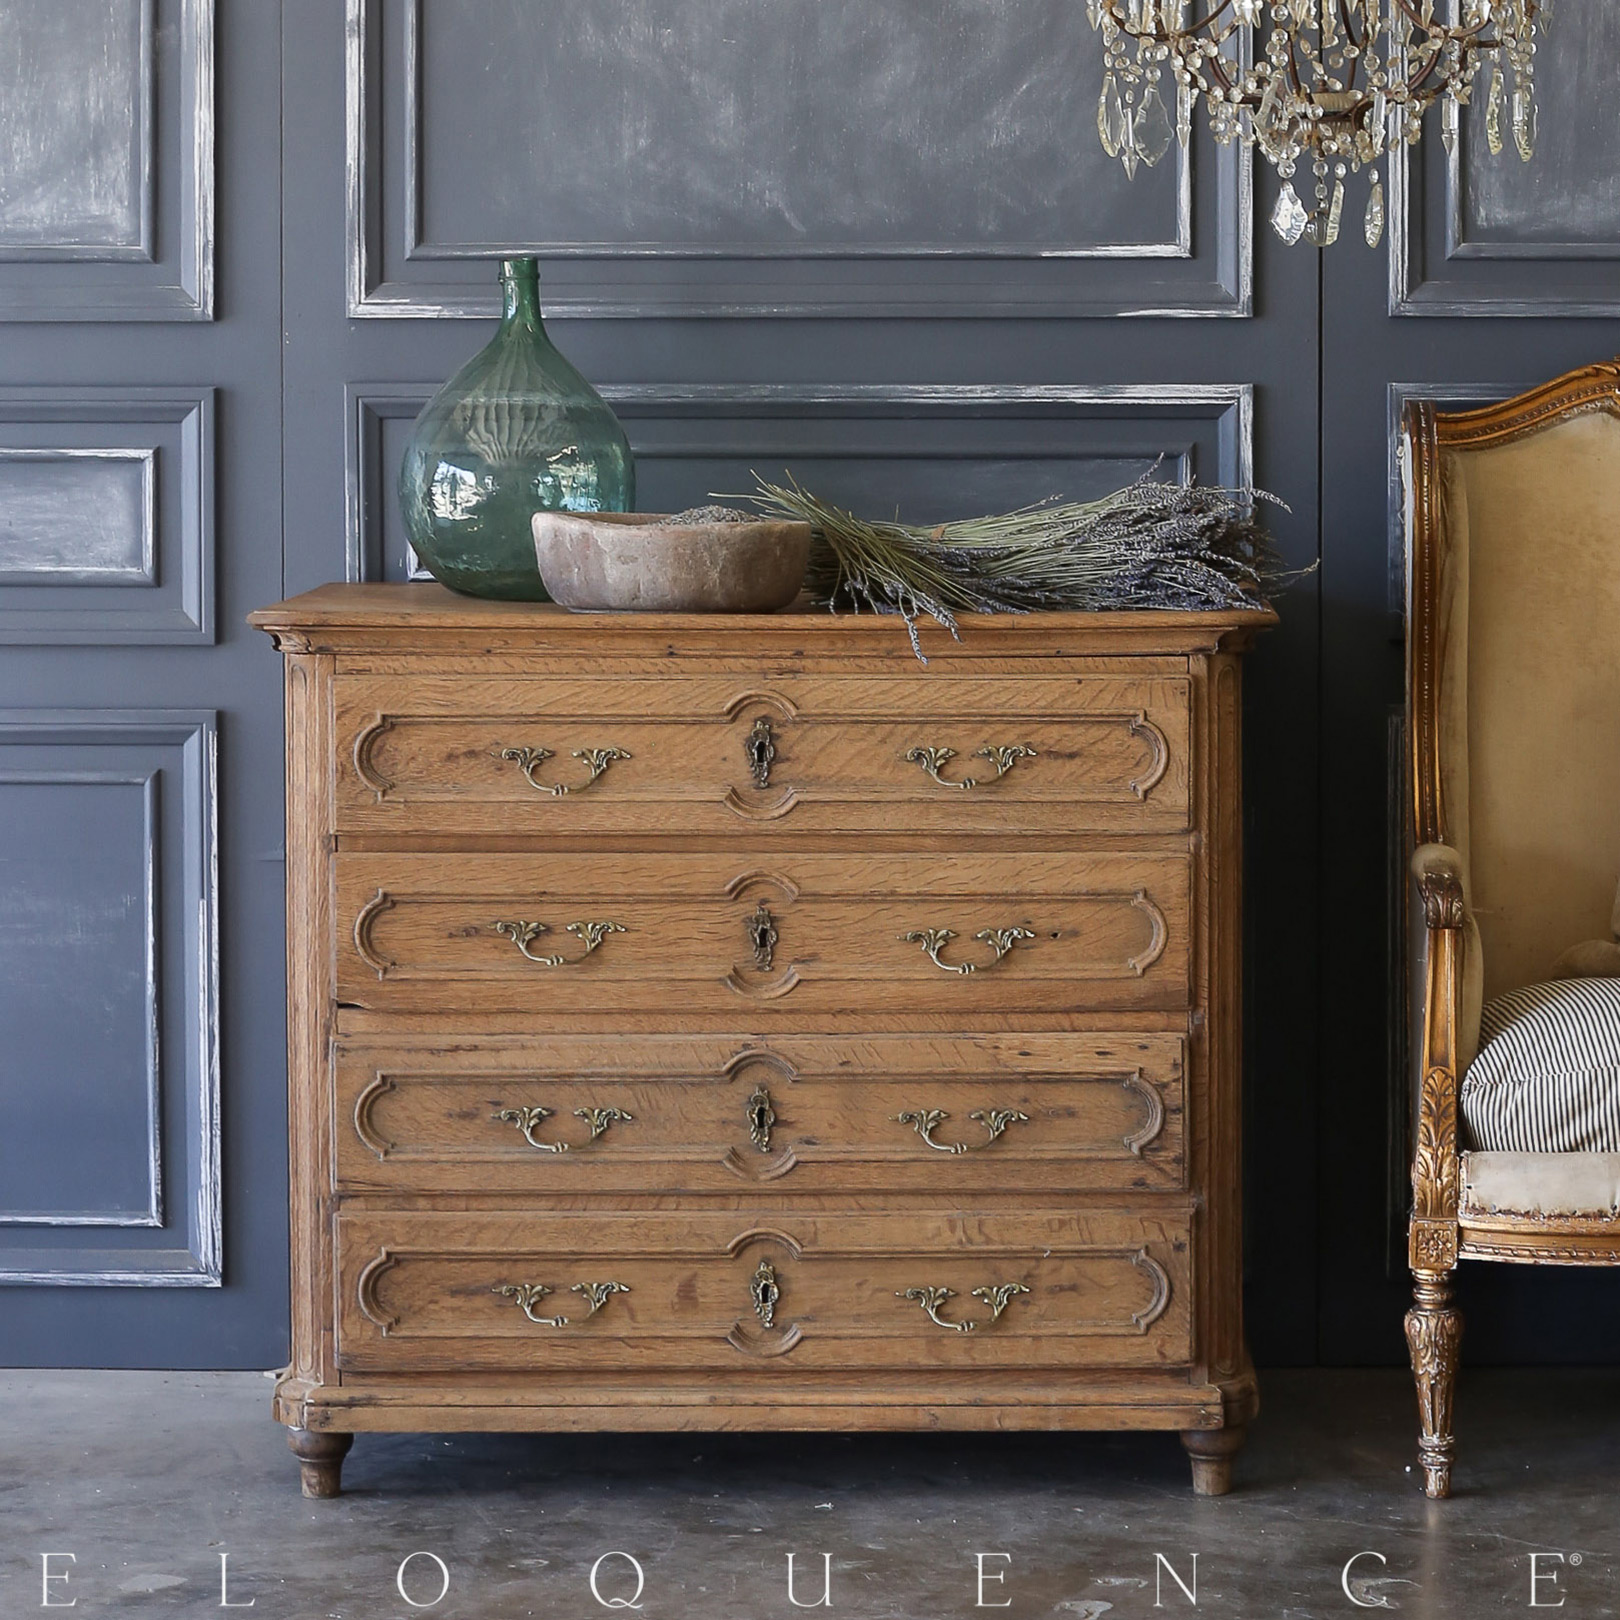 Eloquence® Antique French Commode: 1870